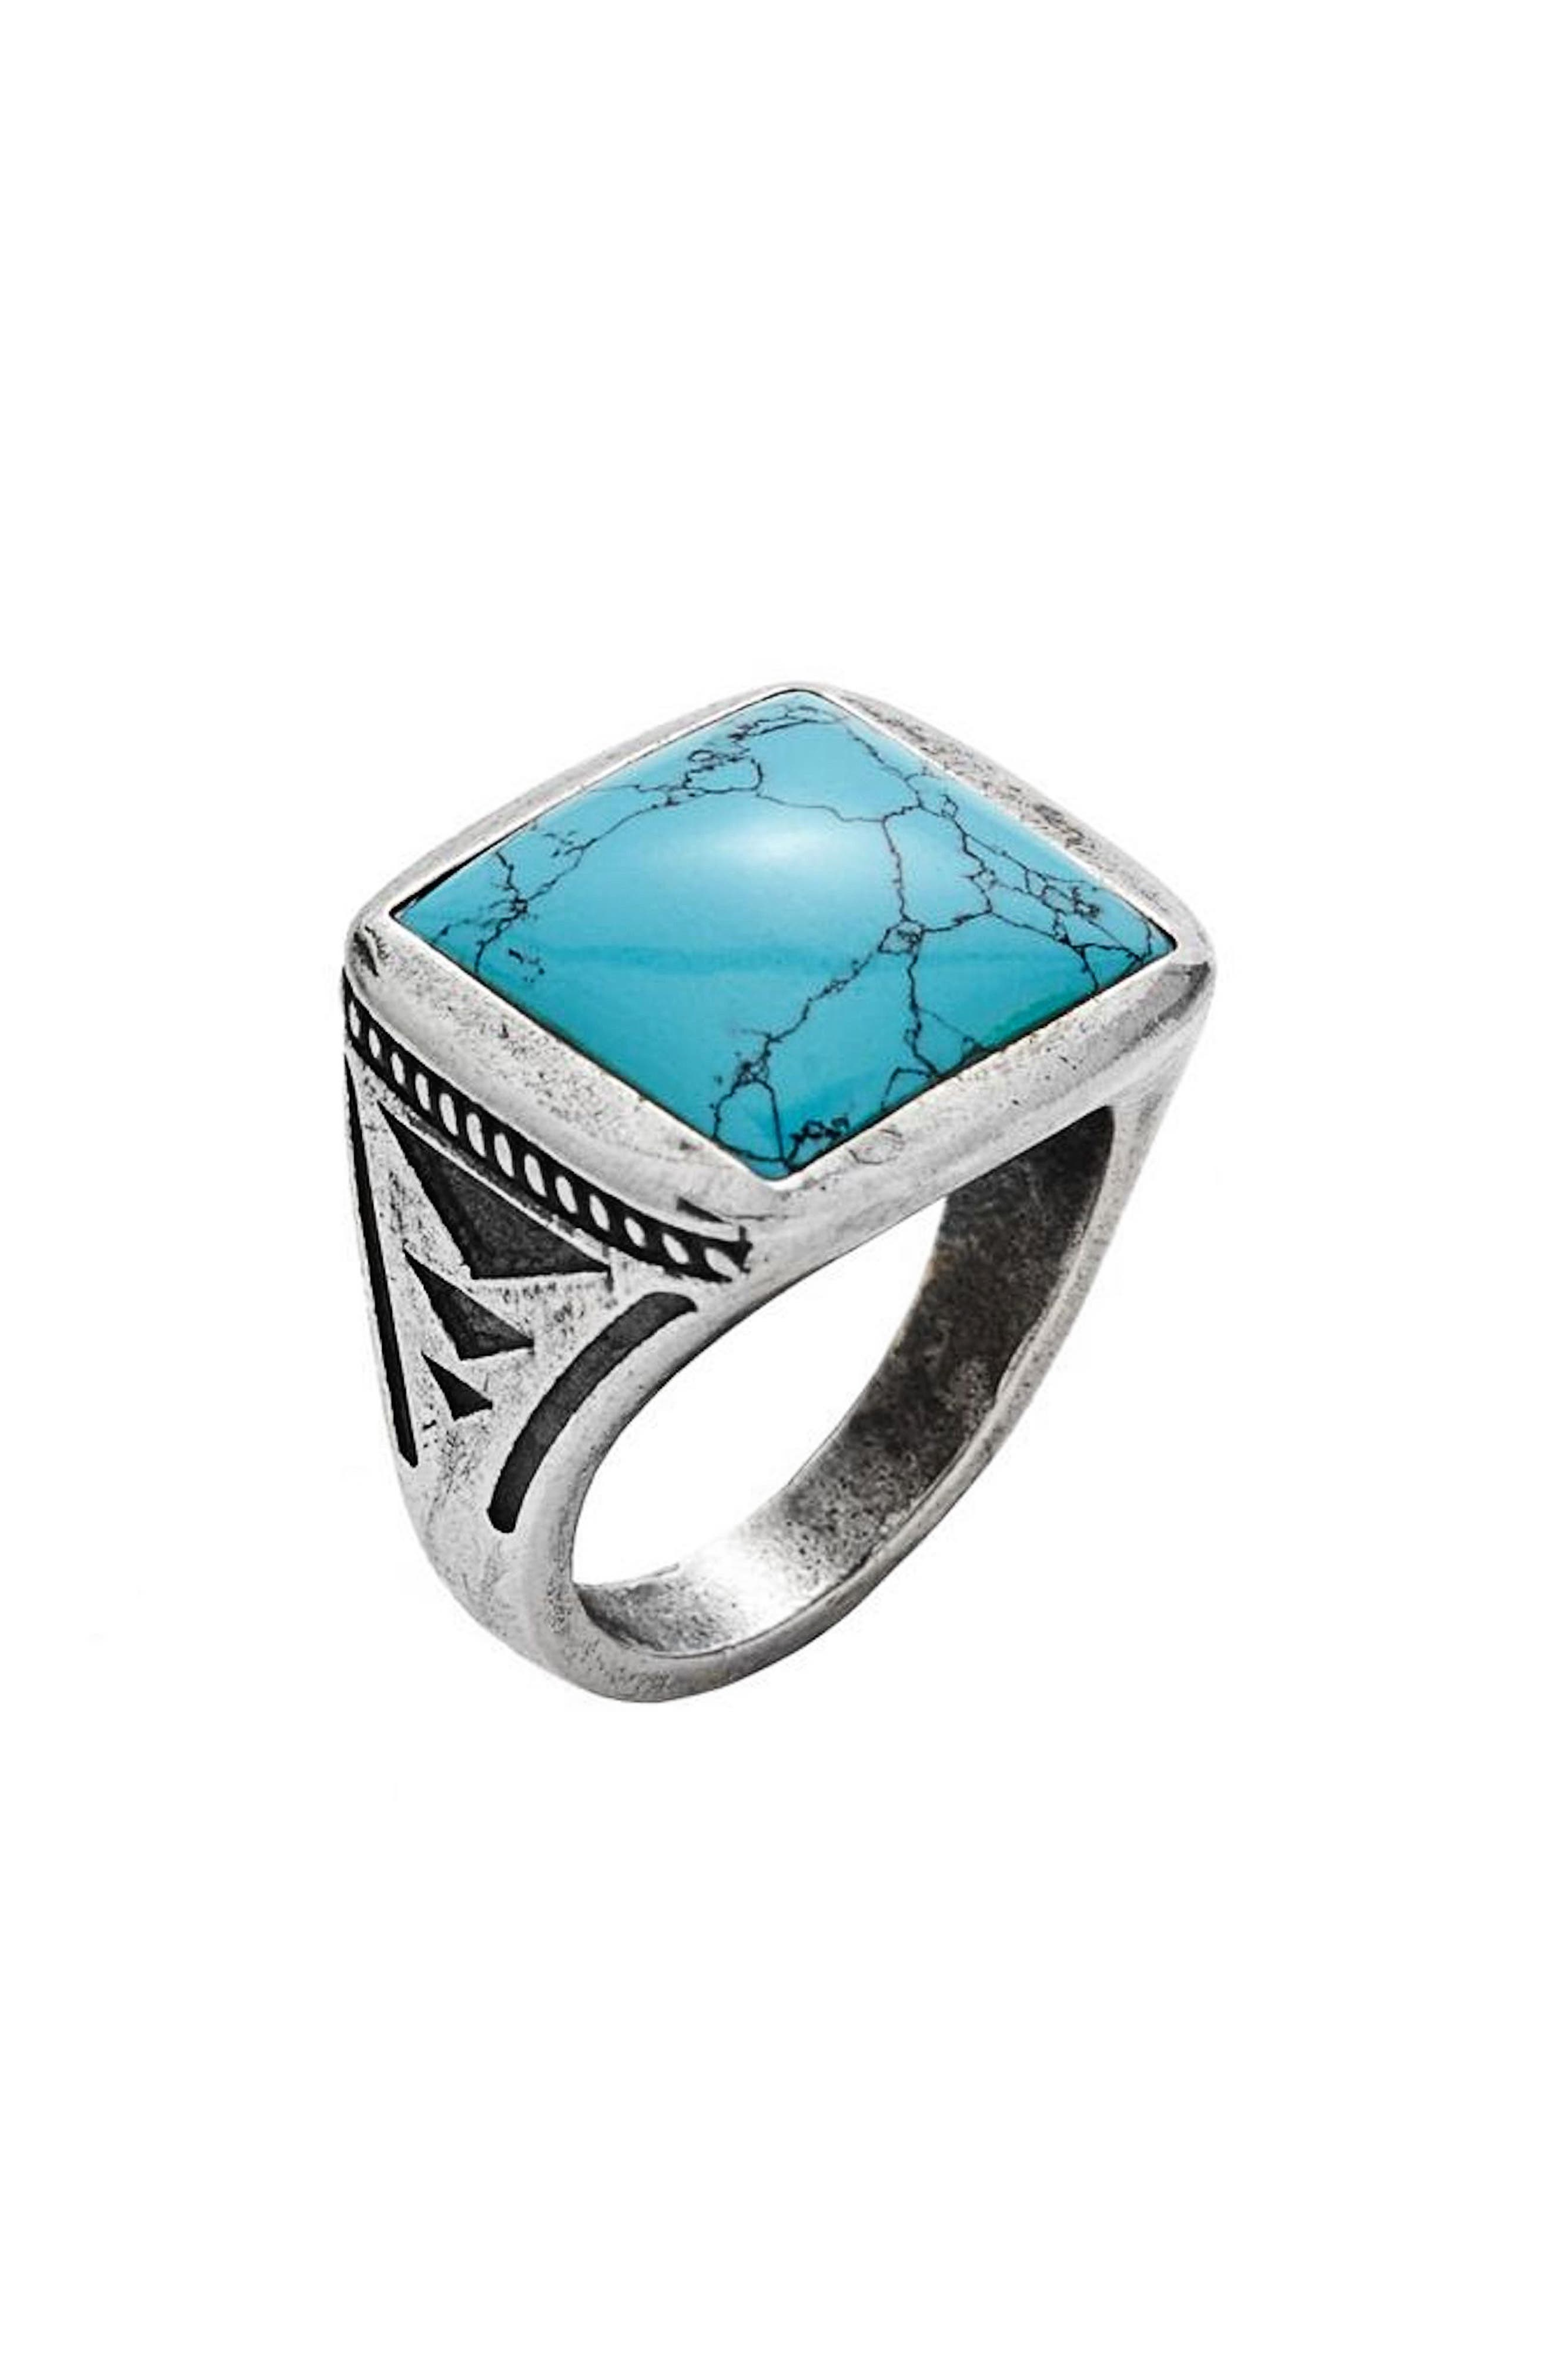 Turquoise Ring,                             Main thumbnail 1, color,                             TURQUOISE